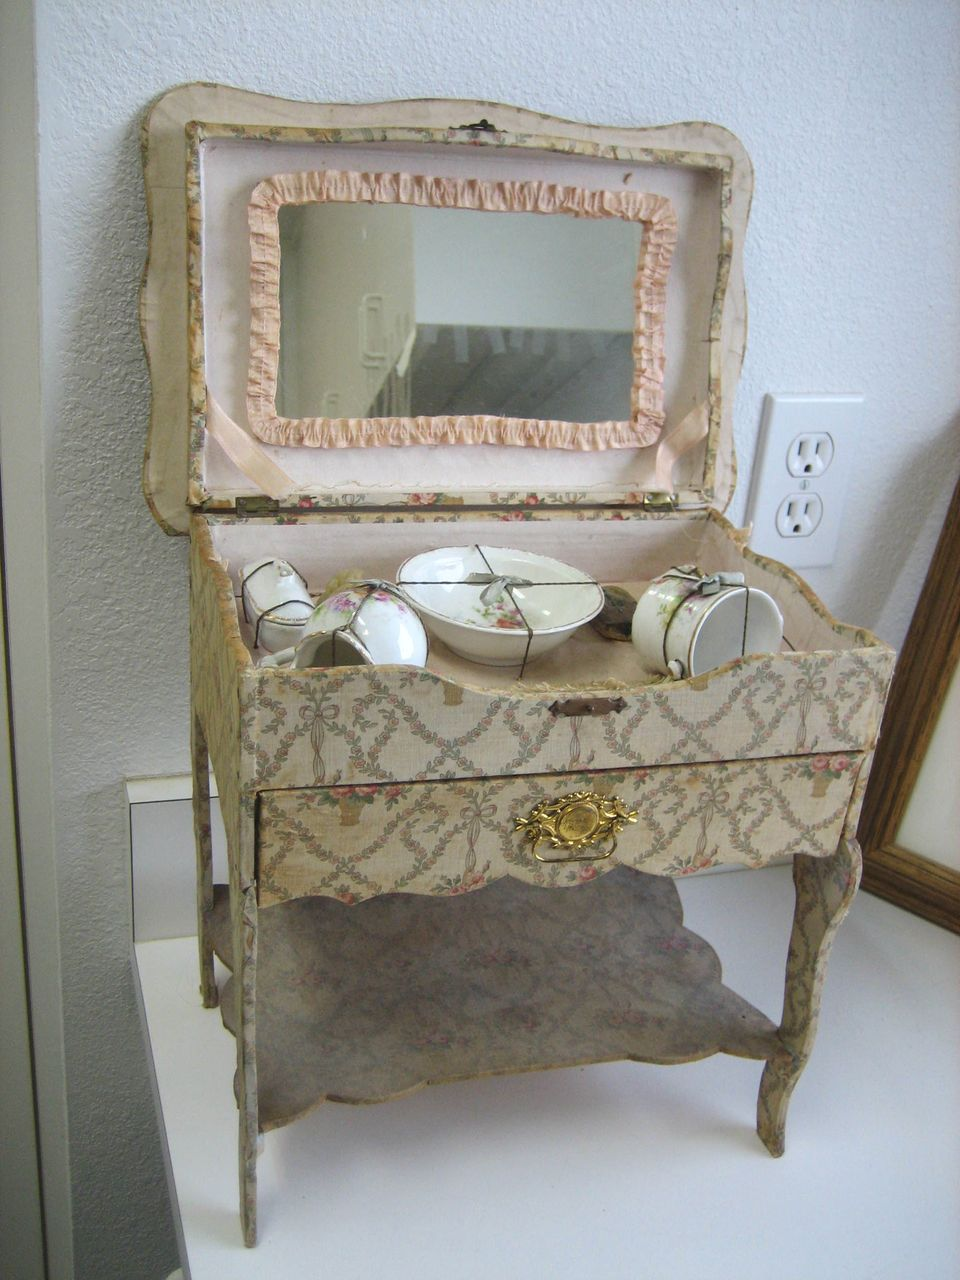 Antique all original French floral vanity toilette with mirror - Antique All Original French Floral Vanity Toilette With Mirror